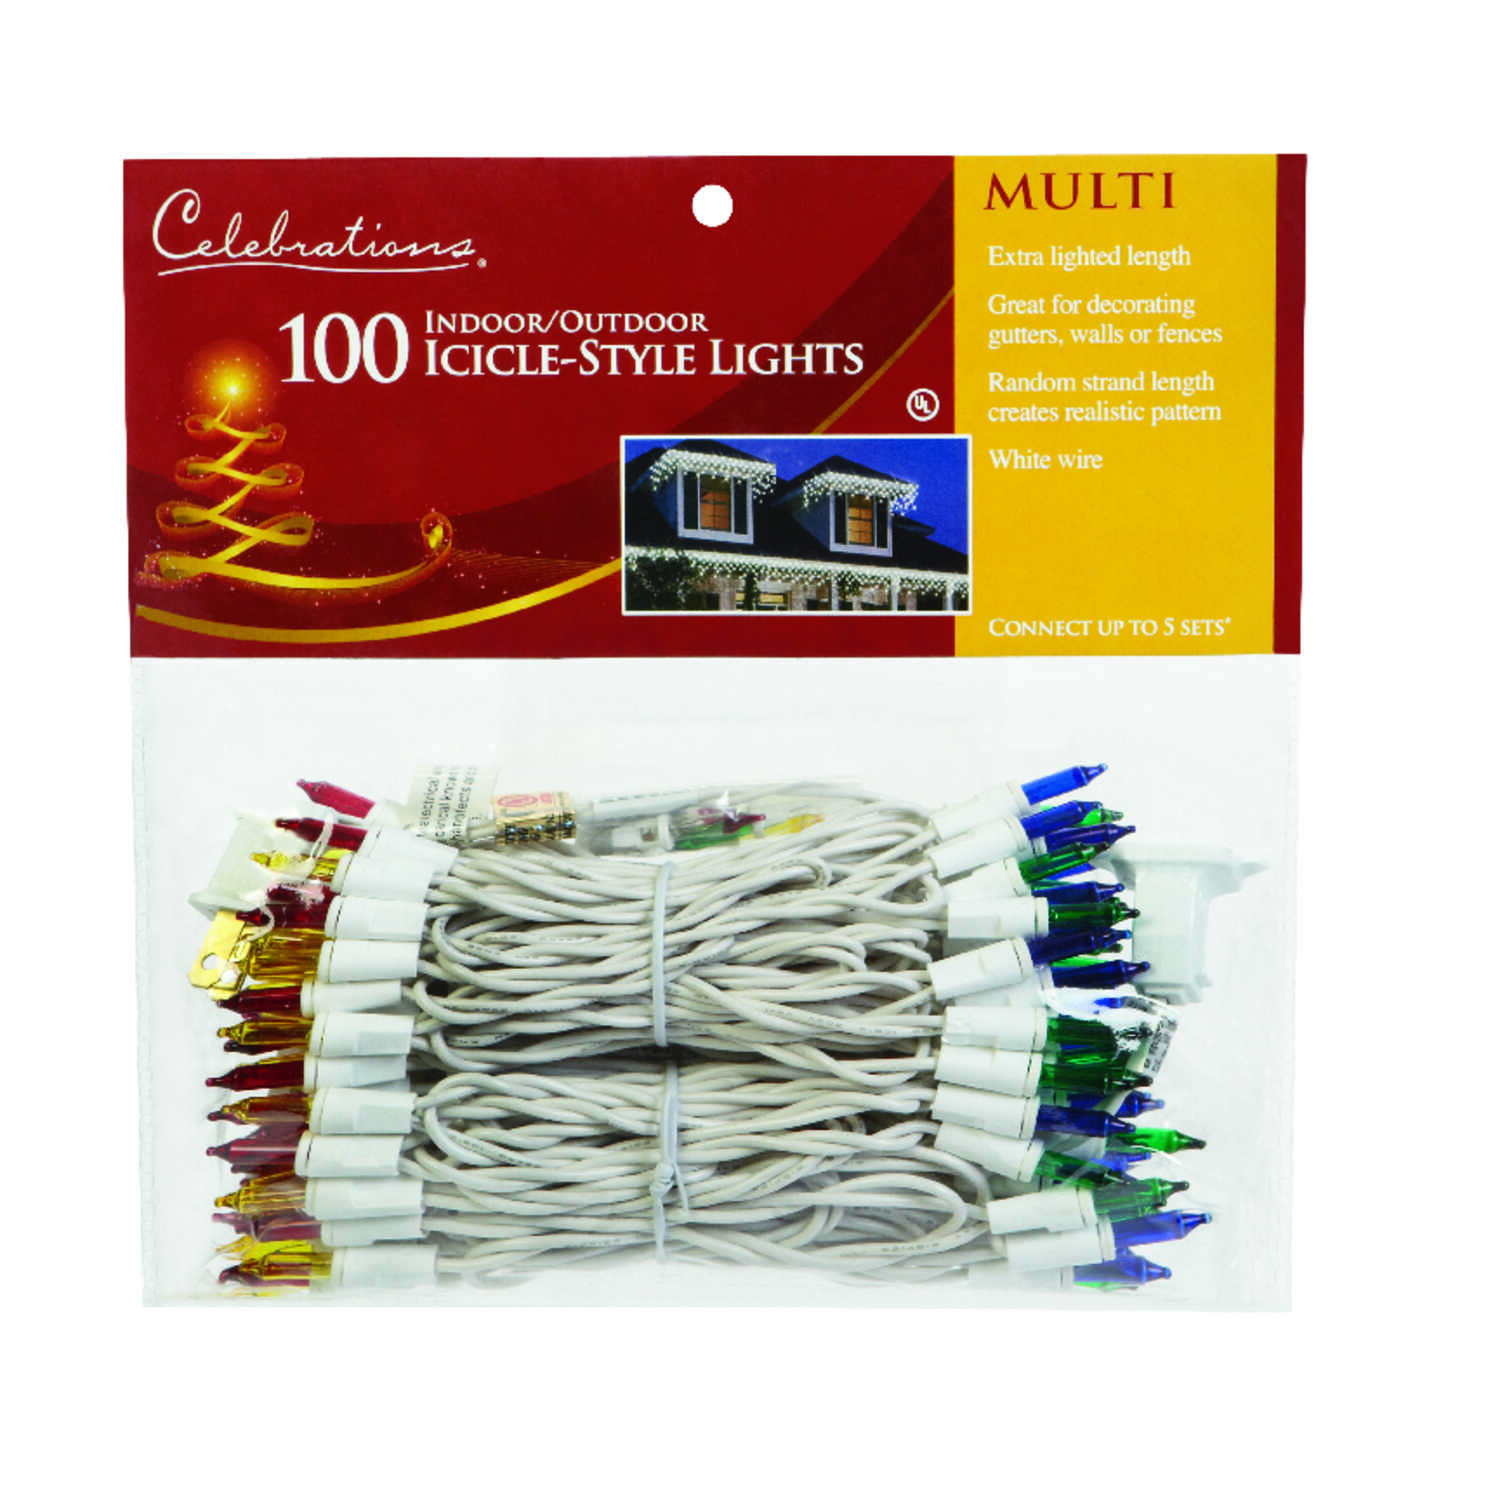 Celebrations  Incandescent  Icicle  Light Set  Multicolored  8.5  100 lights